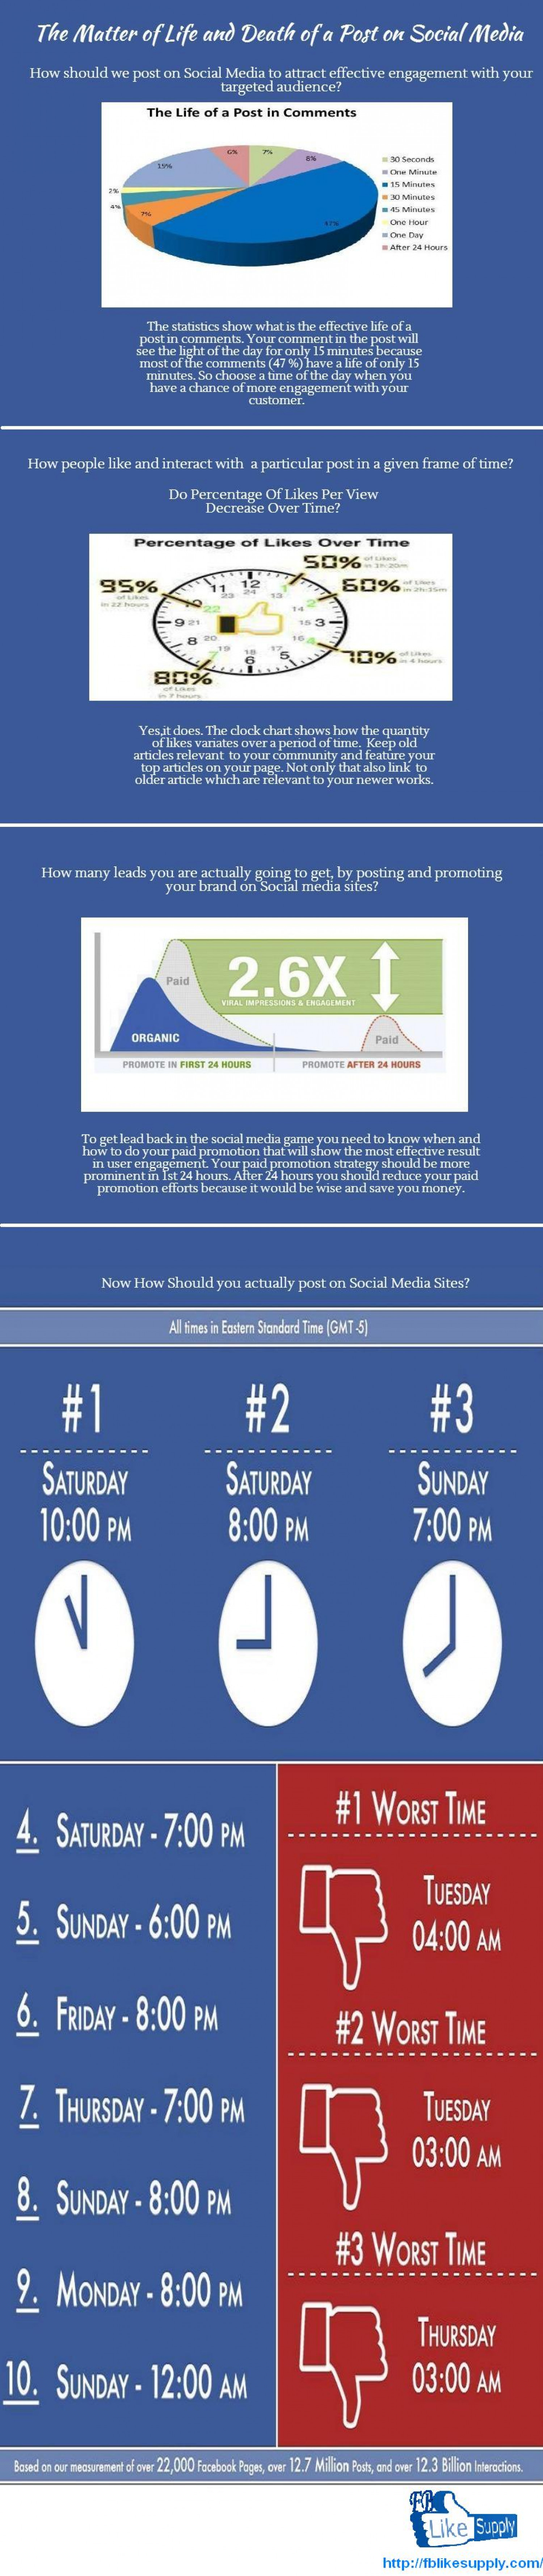 The Matter of Life and Death of a Post on Social Media.  Infographic